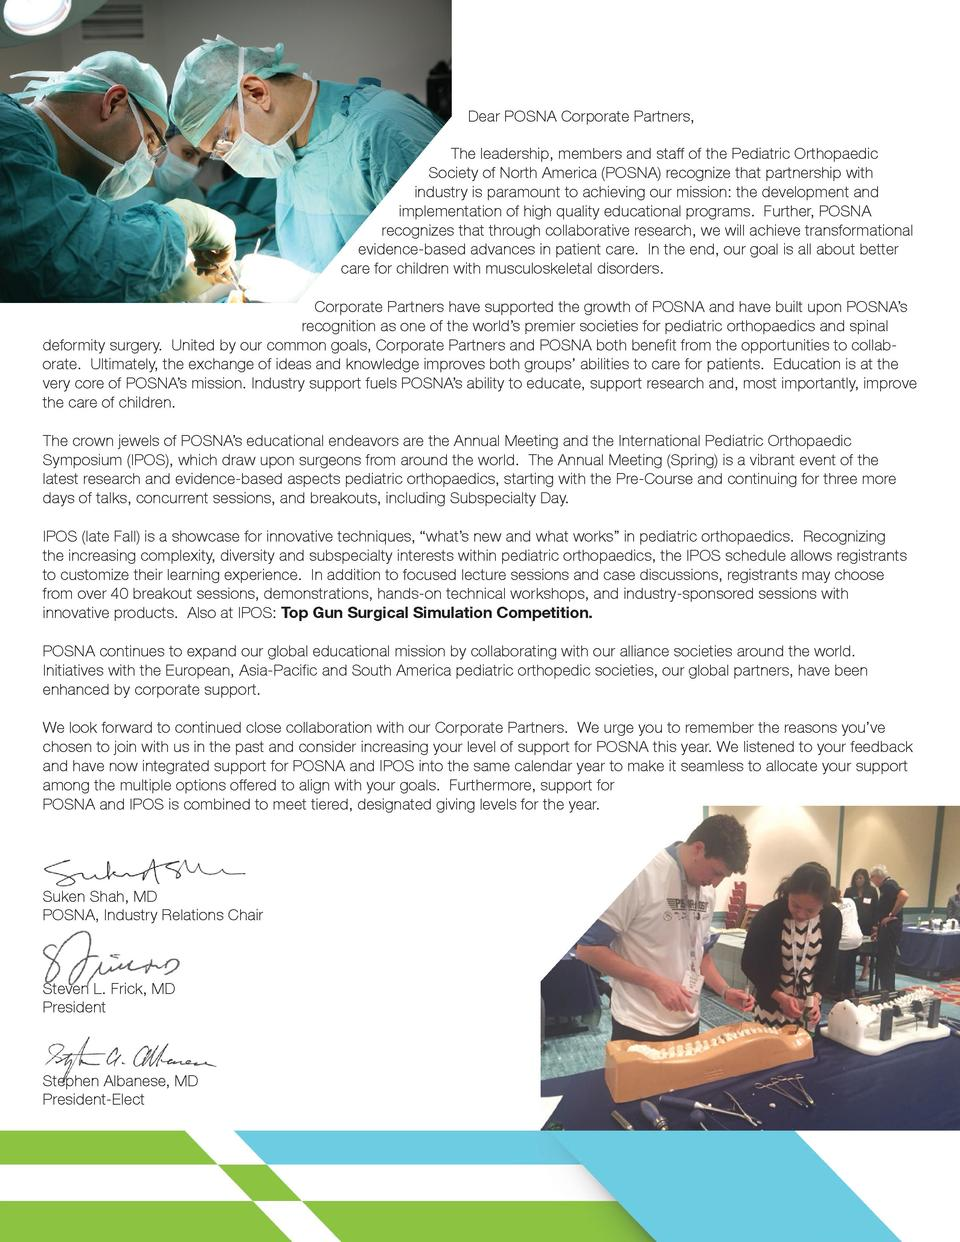 Dear POSNA Corporate Partners, The leadership, members and staff of the Pediatric Orthopaedic Society of Nort...